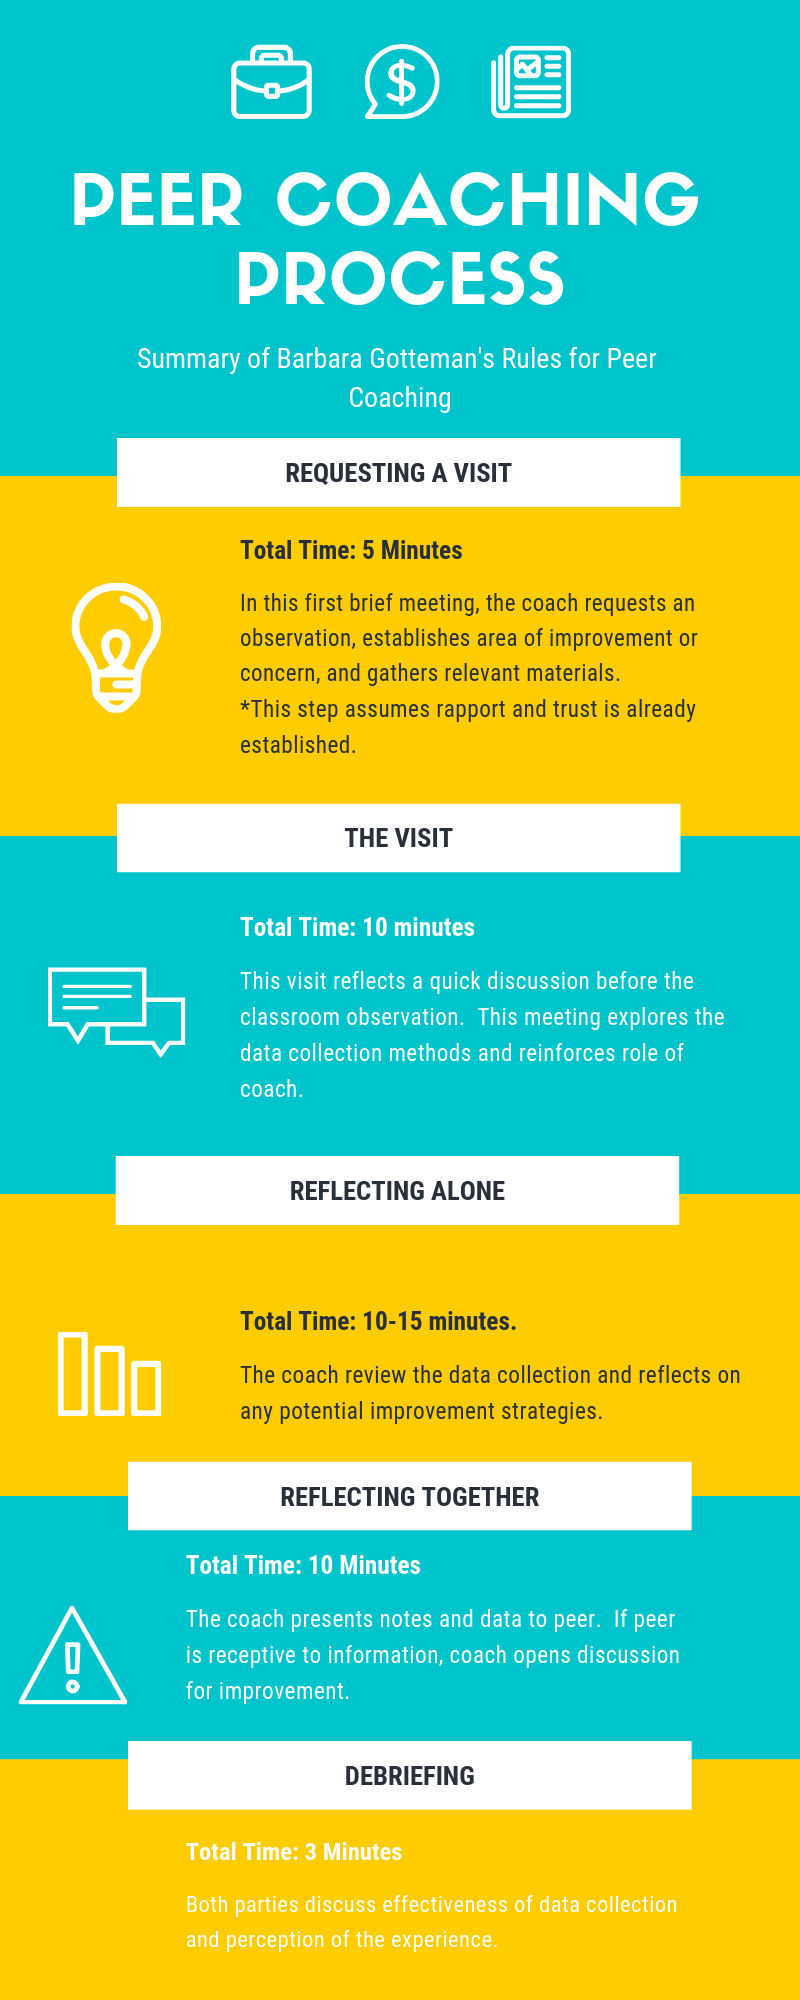 Infographic summarizing the peer coaching process by Dr. Gotteman